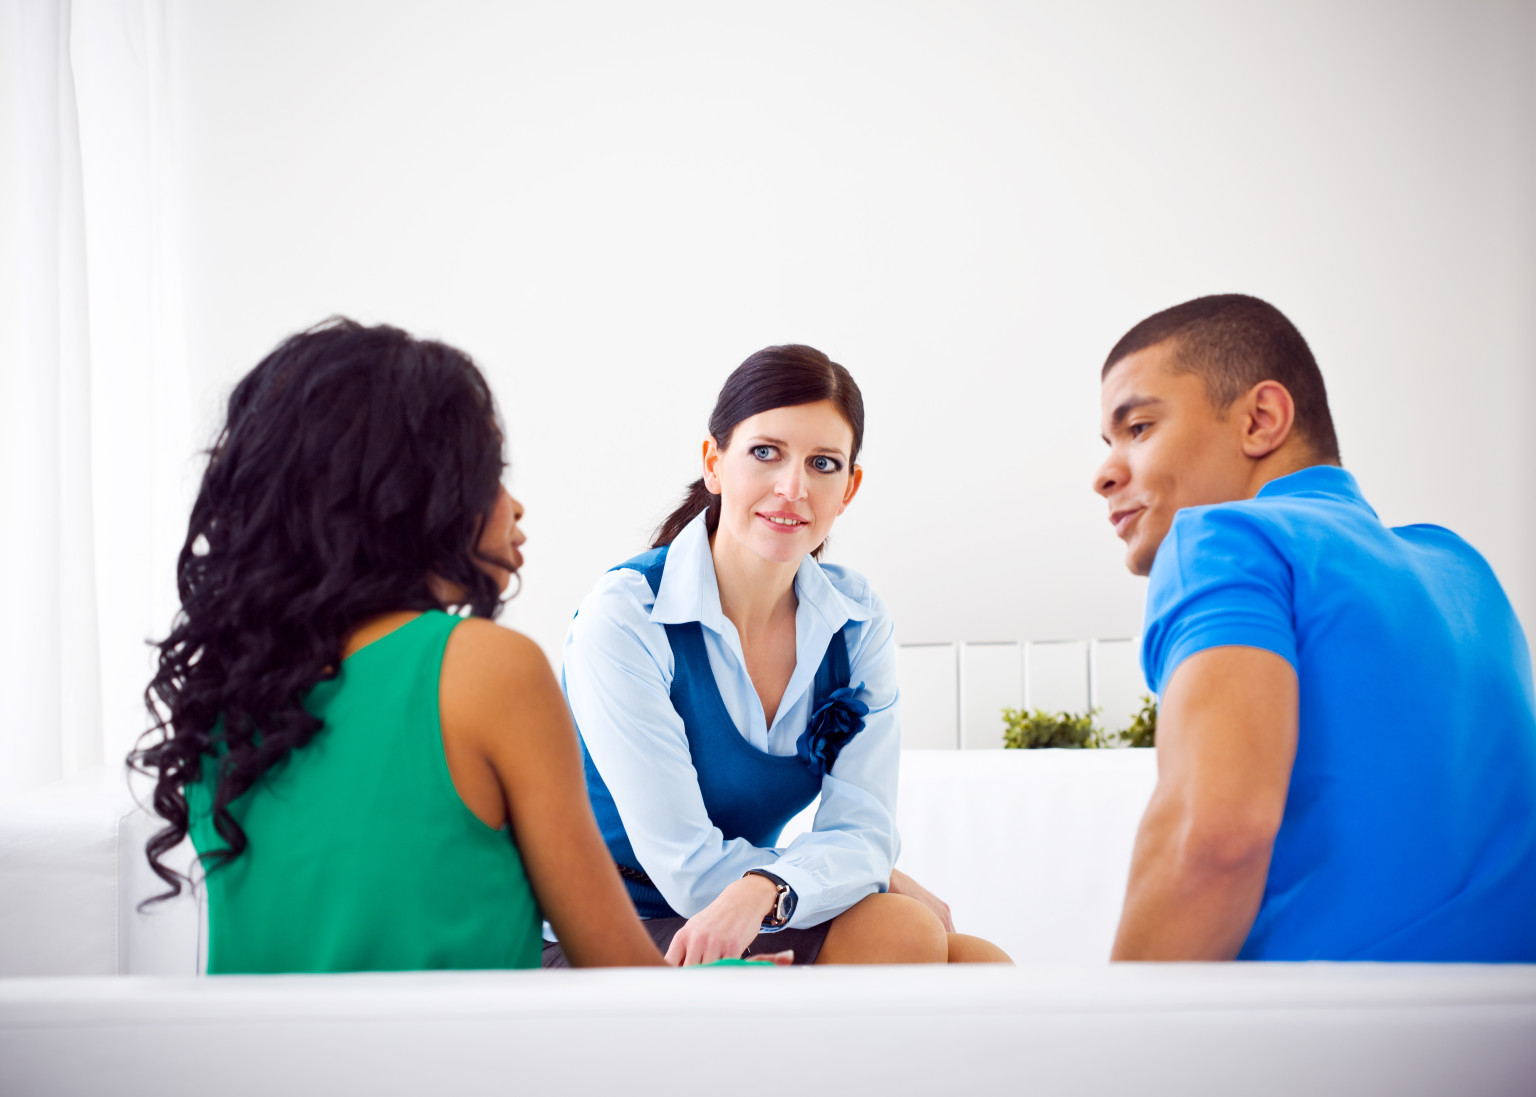 counselor chat sites Chat counselor matching take a questionnaire and be matched with a therapist specific to your needs real online therapy trusted advice, guidance, and counseling for depression, relationships, health, mental illnesses, and more.